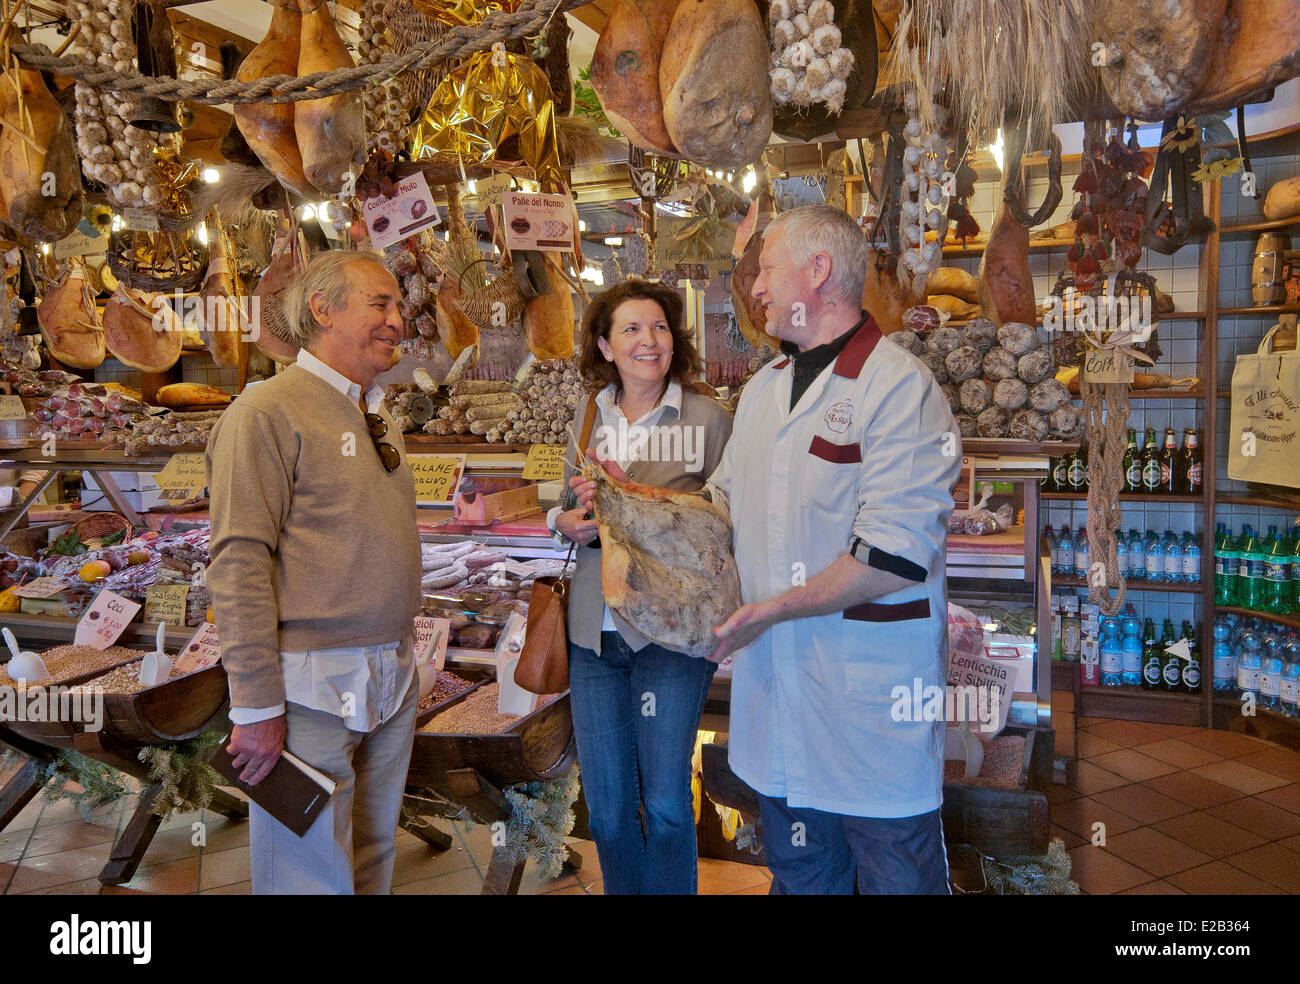 Italy, Umbria, Norcia, shop selling local produce, hams, saussisses, dried fruits, dried beans, dried mushrooms Stock Photo